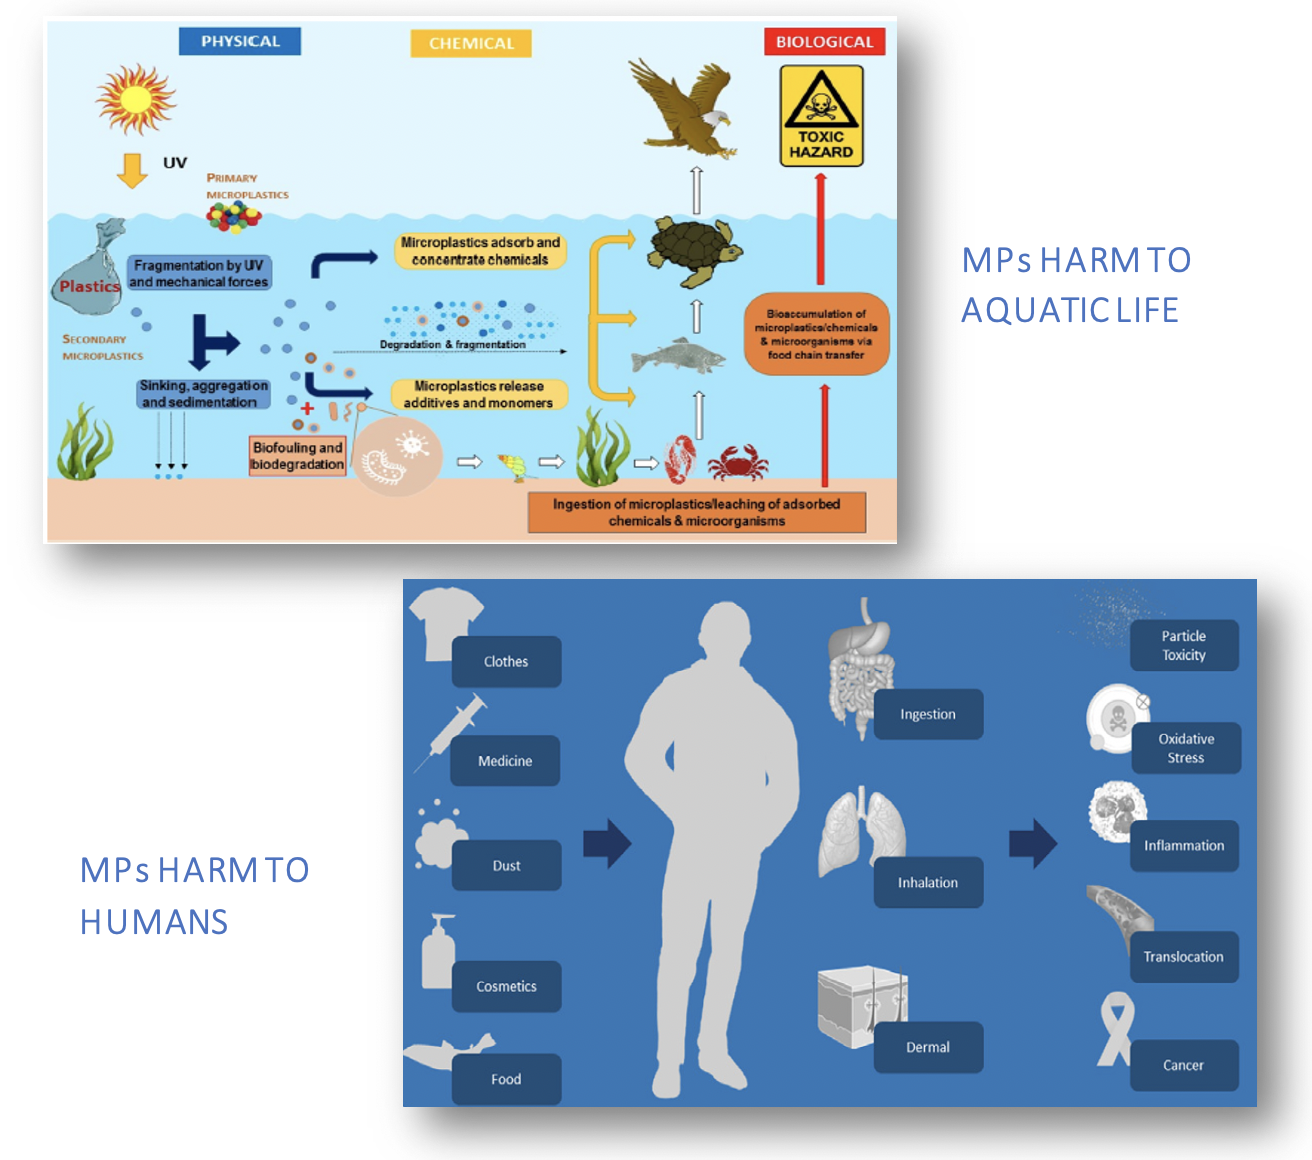 Figure 2. (Top) MPs affect aquatic environments via a number of processes (physical, chemical, biological) [5]; (Bottom) Their potential harm to humans and exposure routes [7].